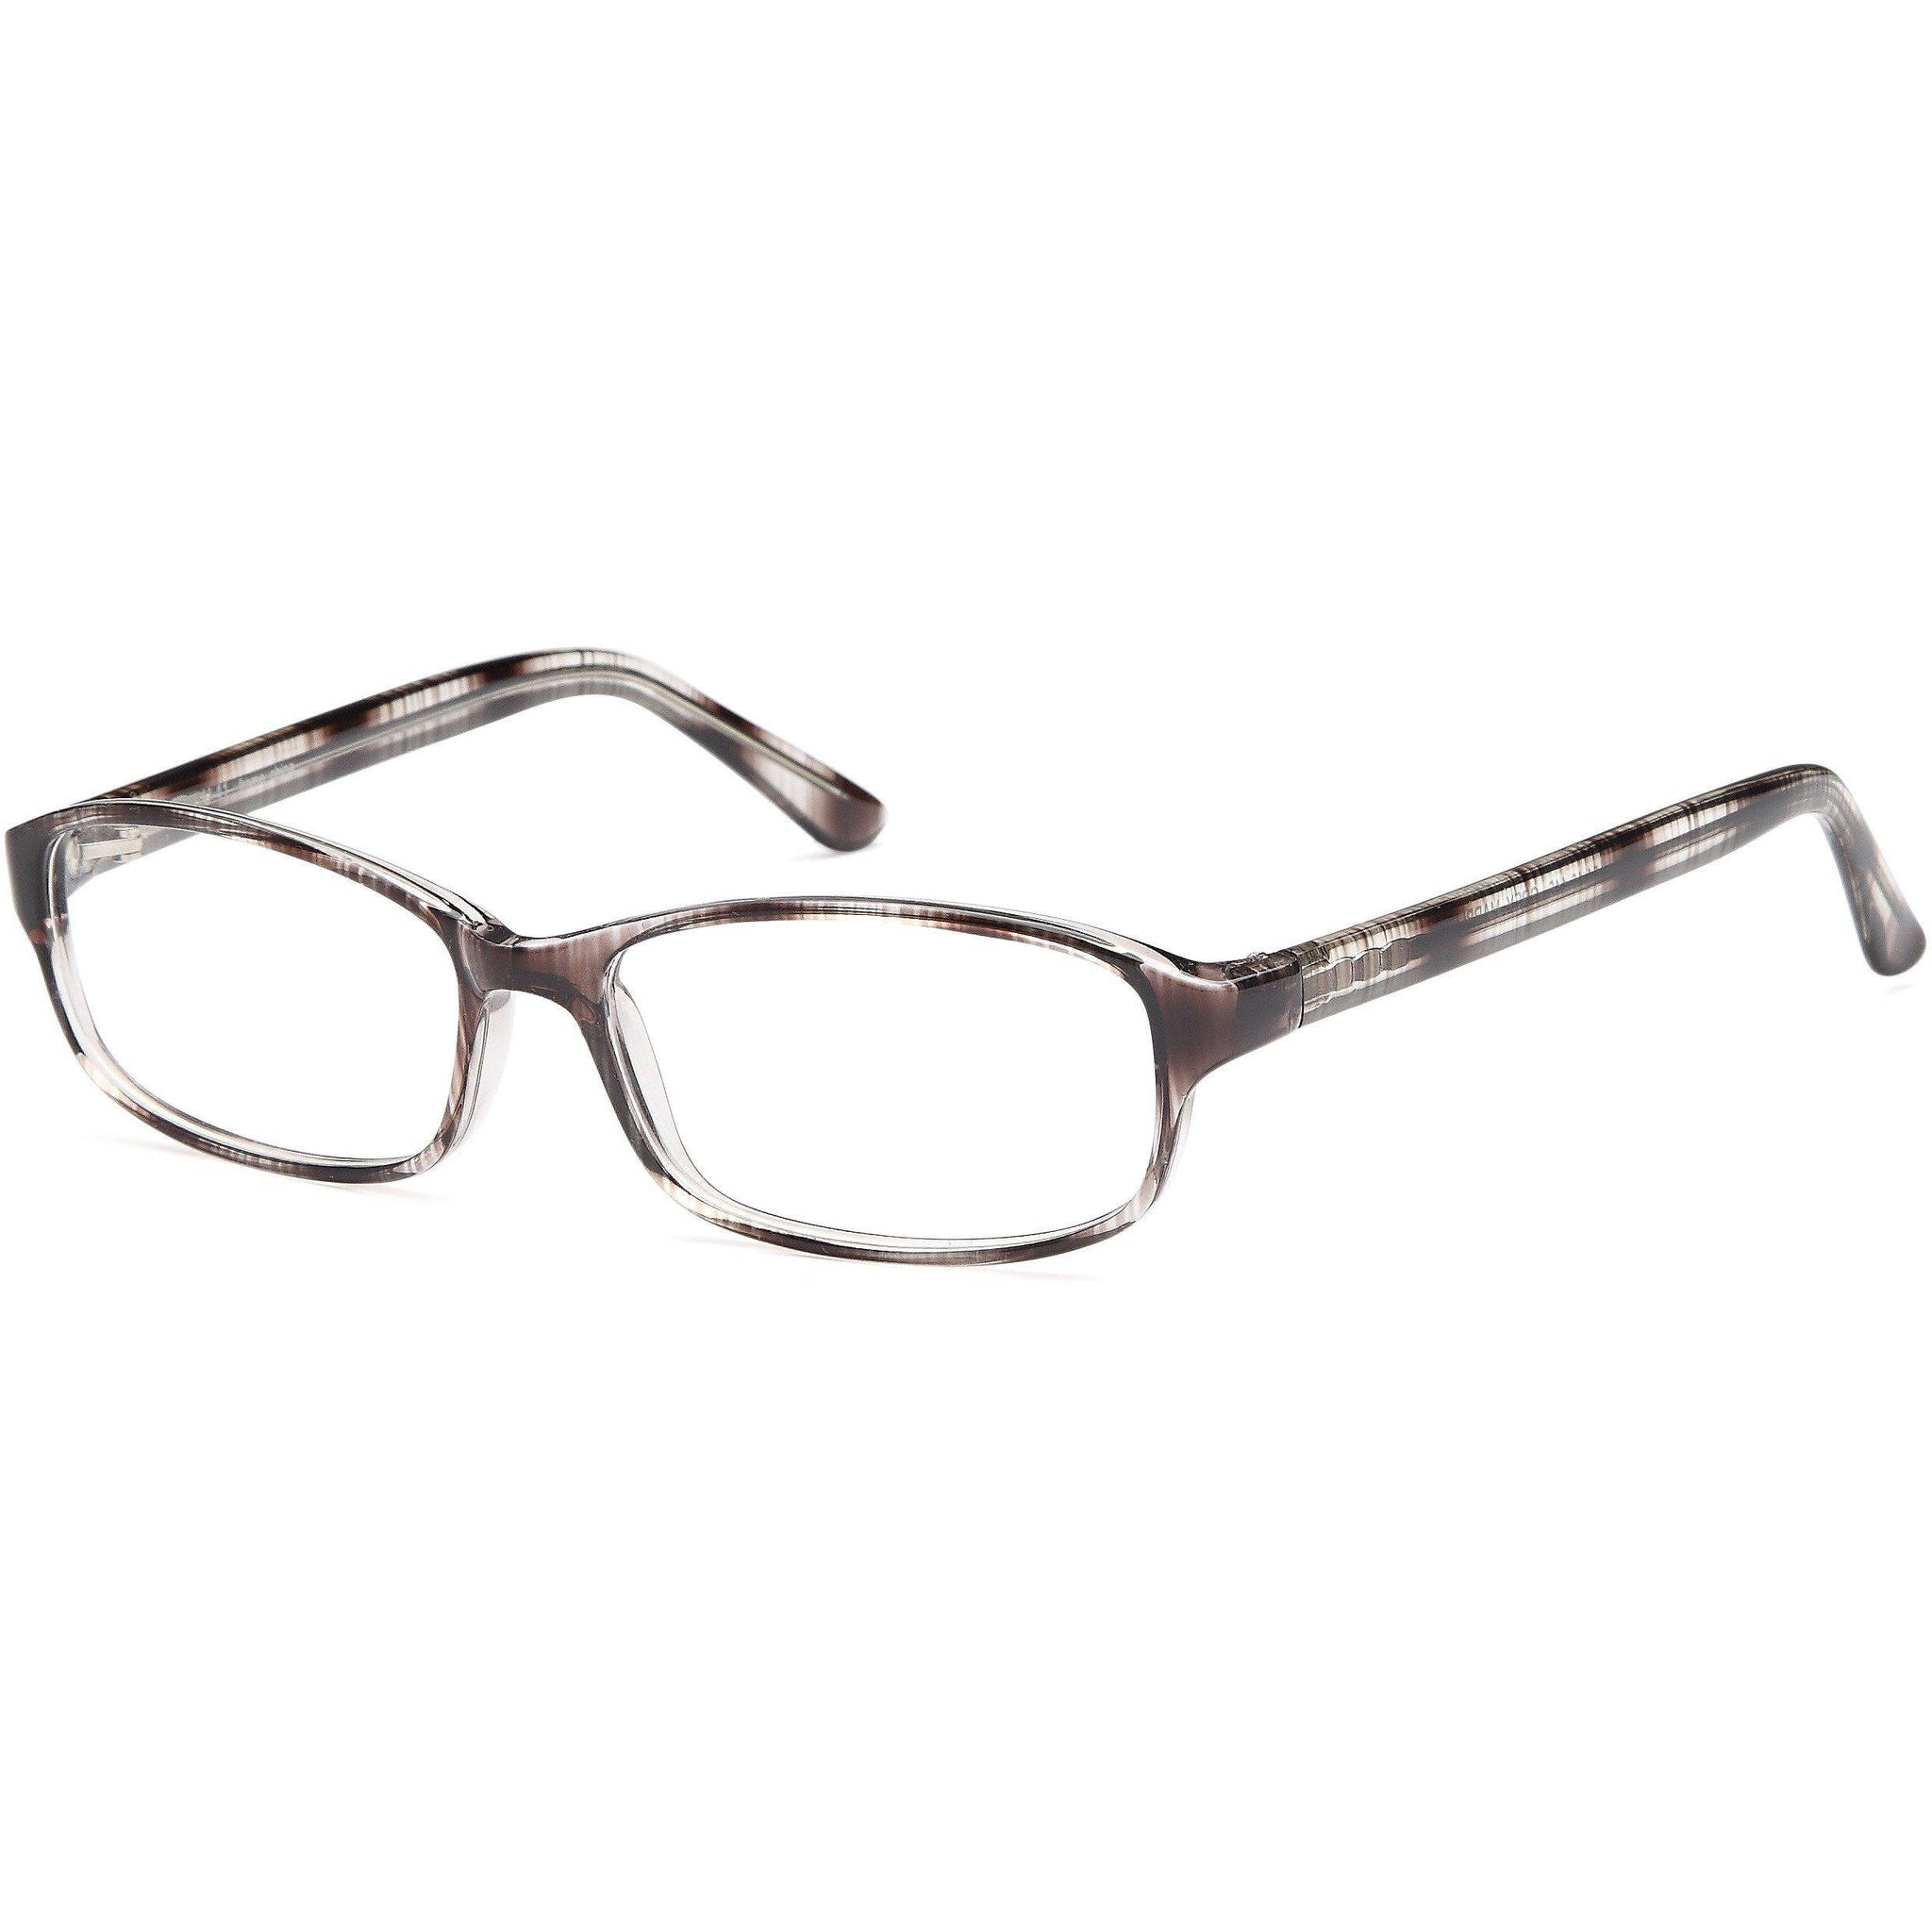 The Square Mile Prescription Glasses Kensington Eyeglasses